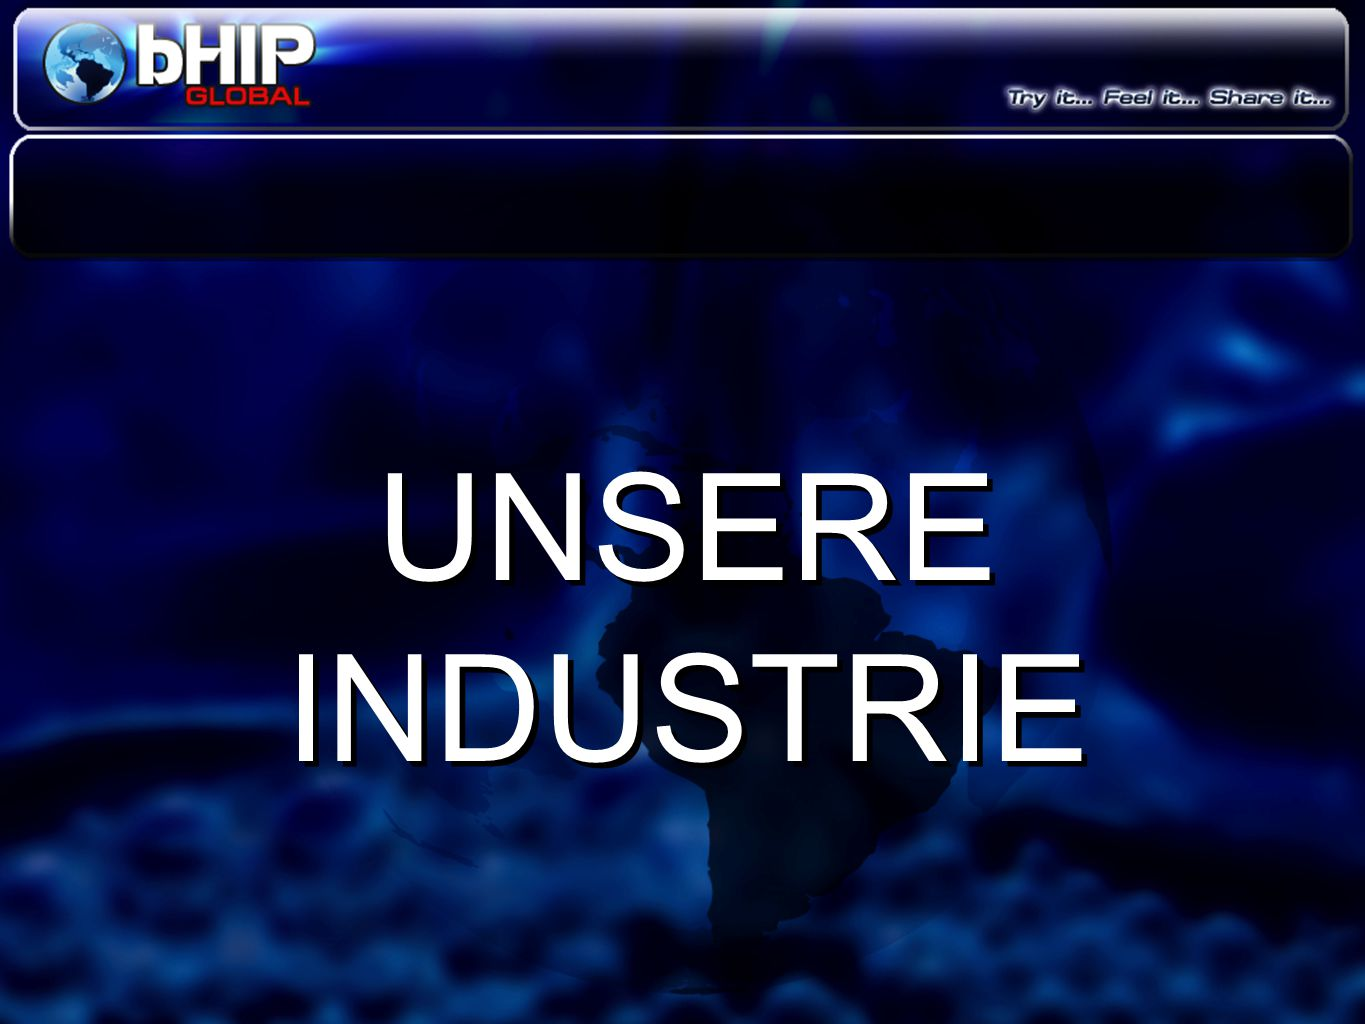 UNSERE INDUSTRIE